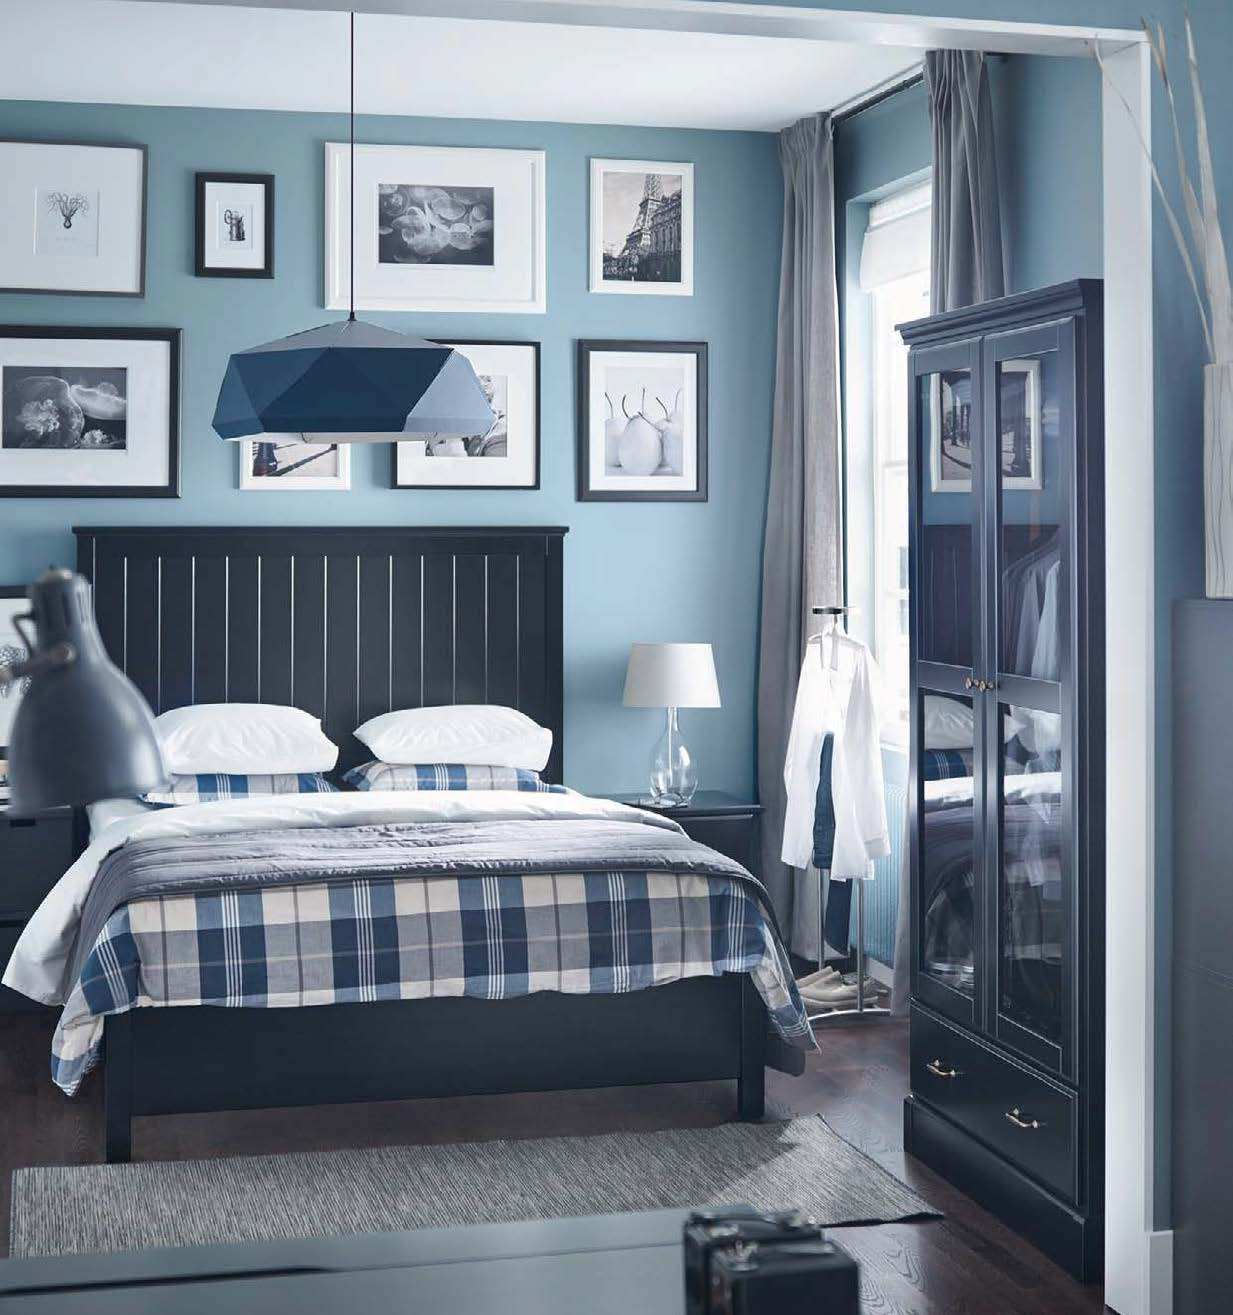 Ikea 2016 catalog for Pictures of bed rooms